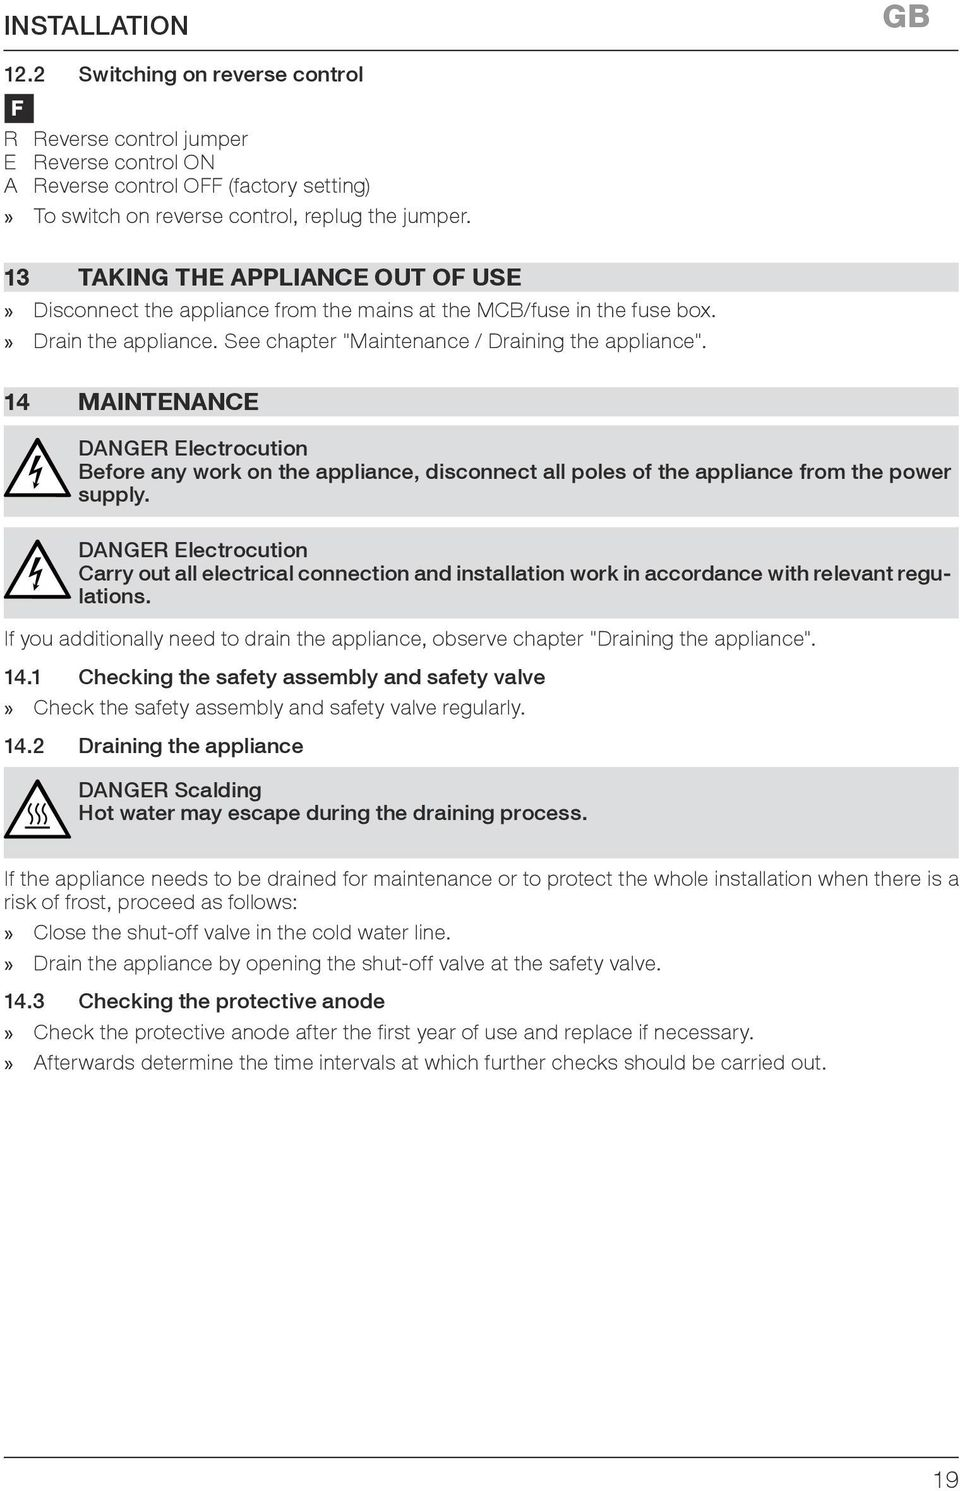 medium resolution of 14 maintenance danger electrocution before any work on the appliance disconnect all poles of the